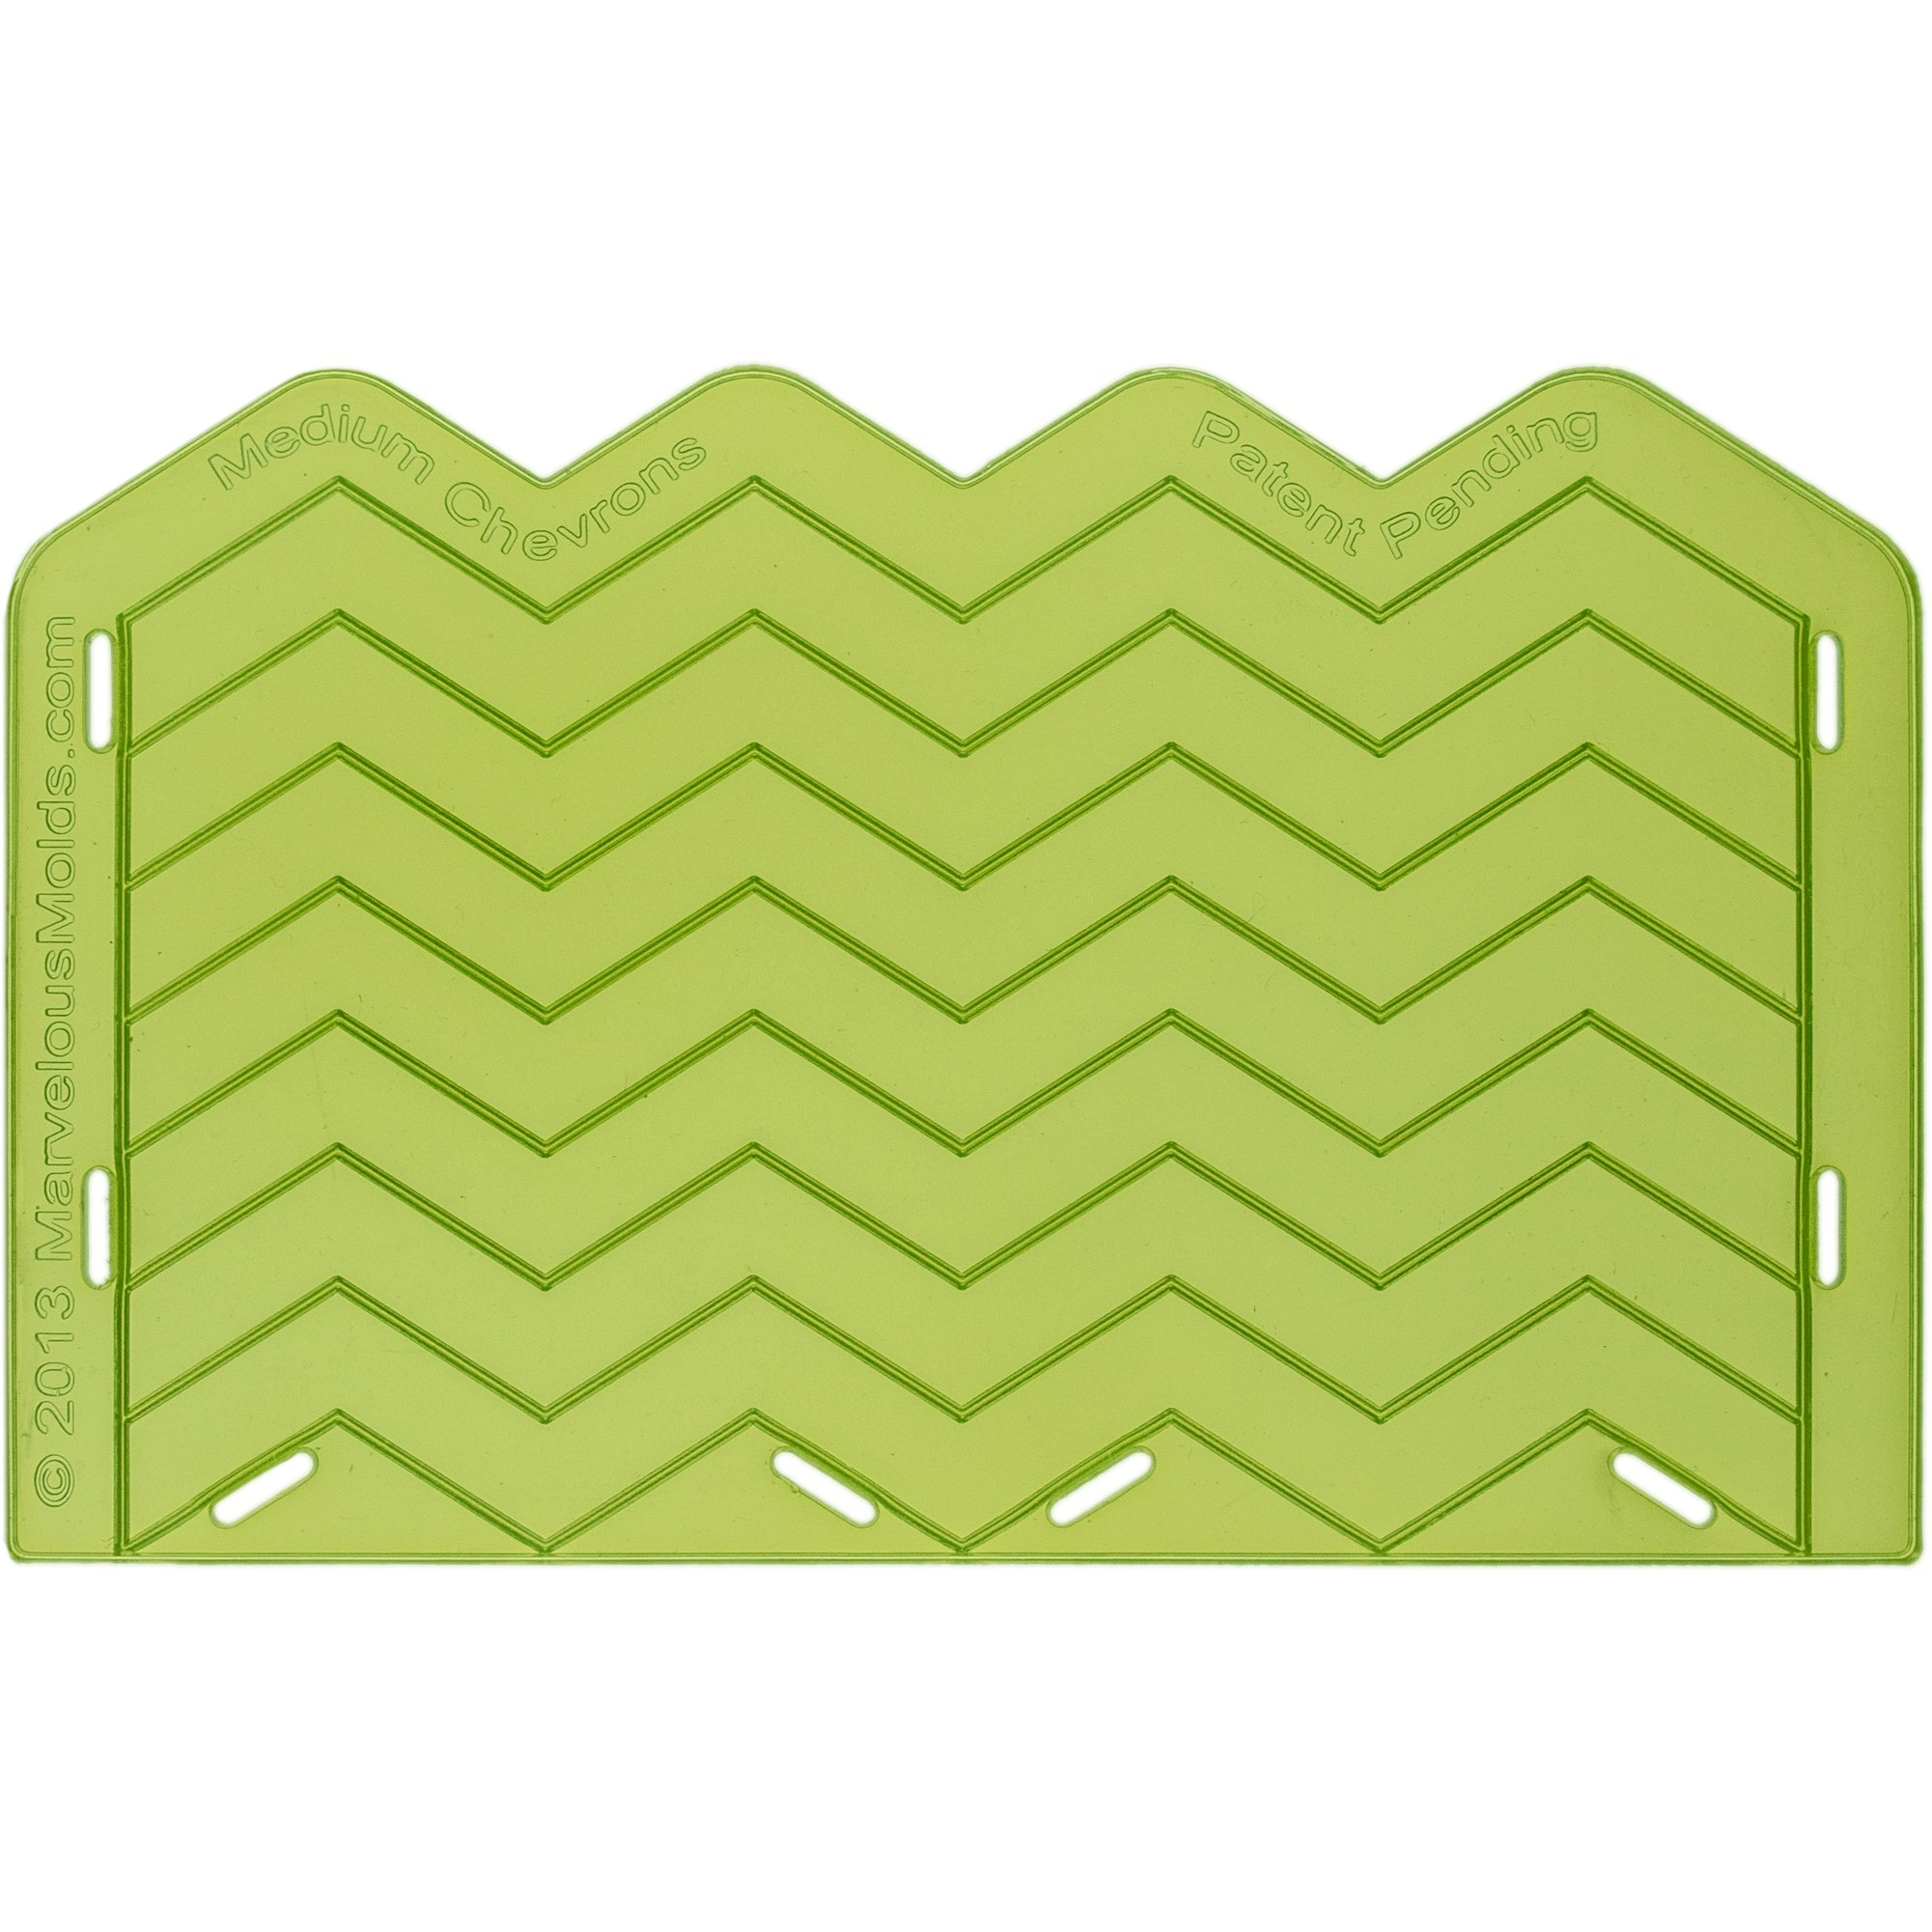 Marvelous Molds Medium Chevron Silicone Onlay for Cake Decorating with Fondant and Gumpaste Icing